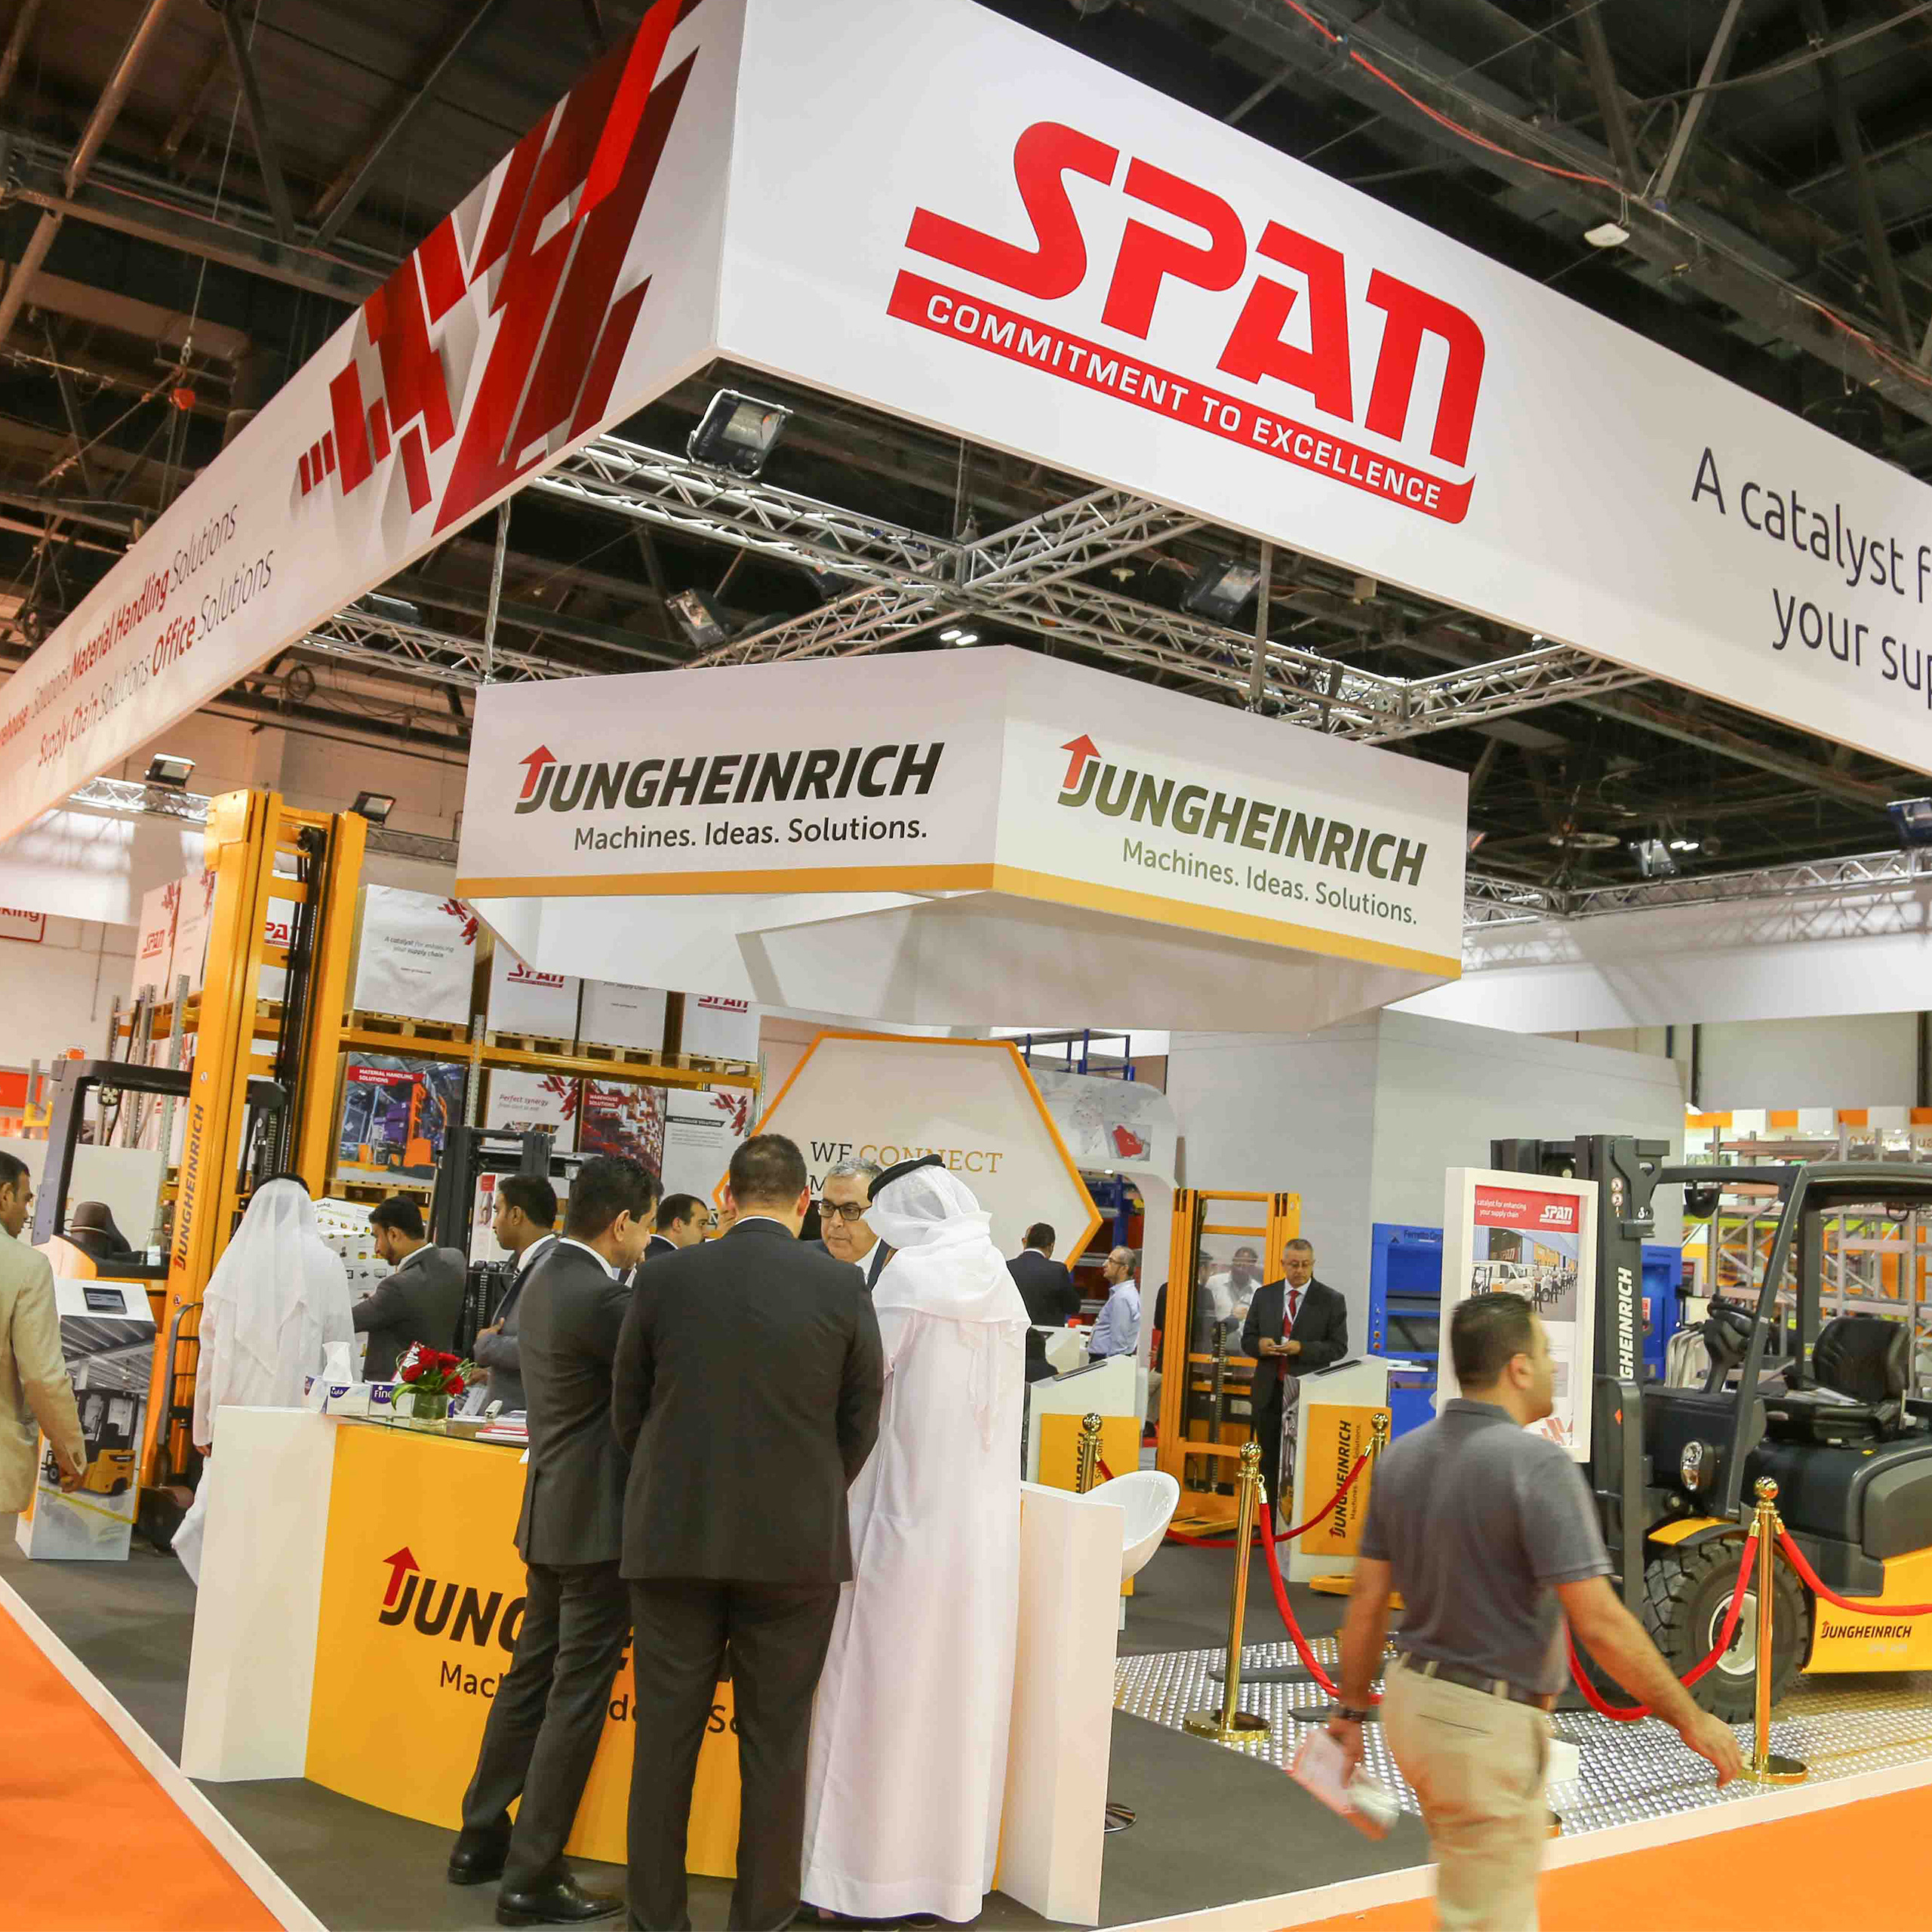 Materials Handling Middle East - Customised solutions key to business success in new logistics landscape say exhibitors at Materials Handling Middle East